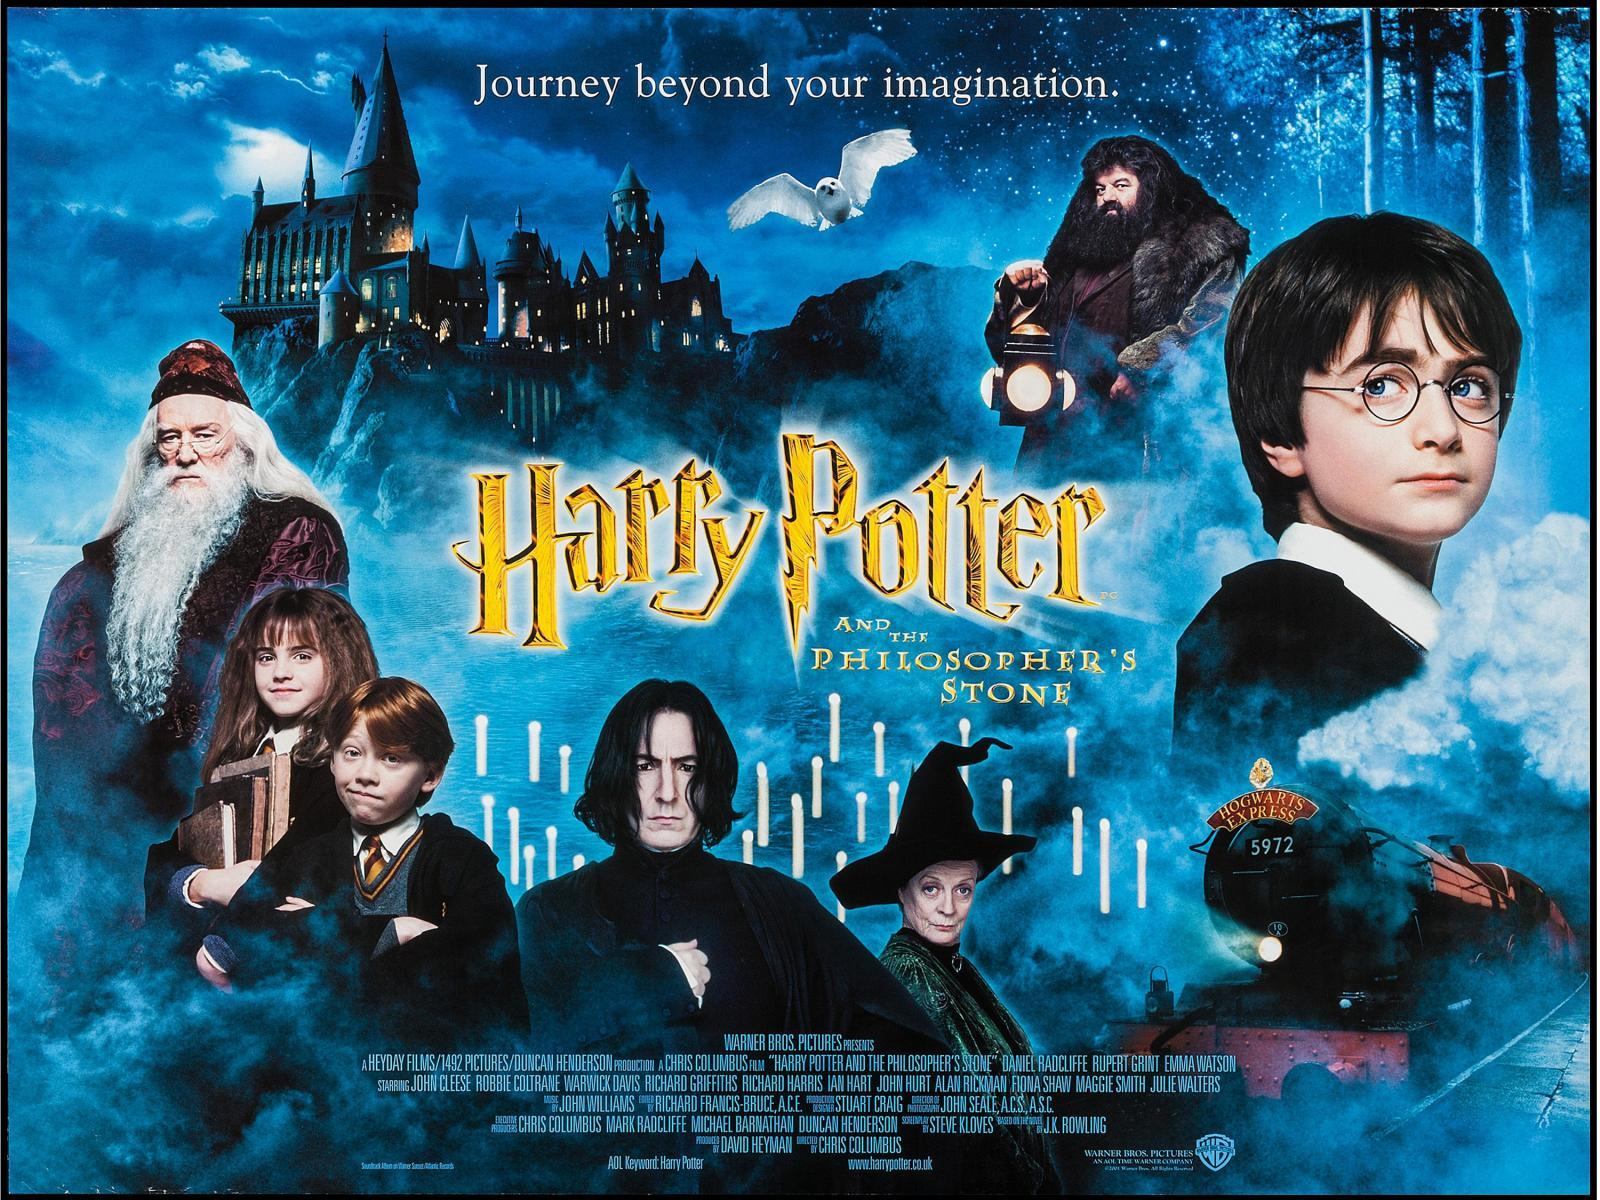 Image Gallery For Harry Potter And The Philosophers Stone